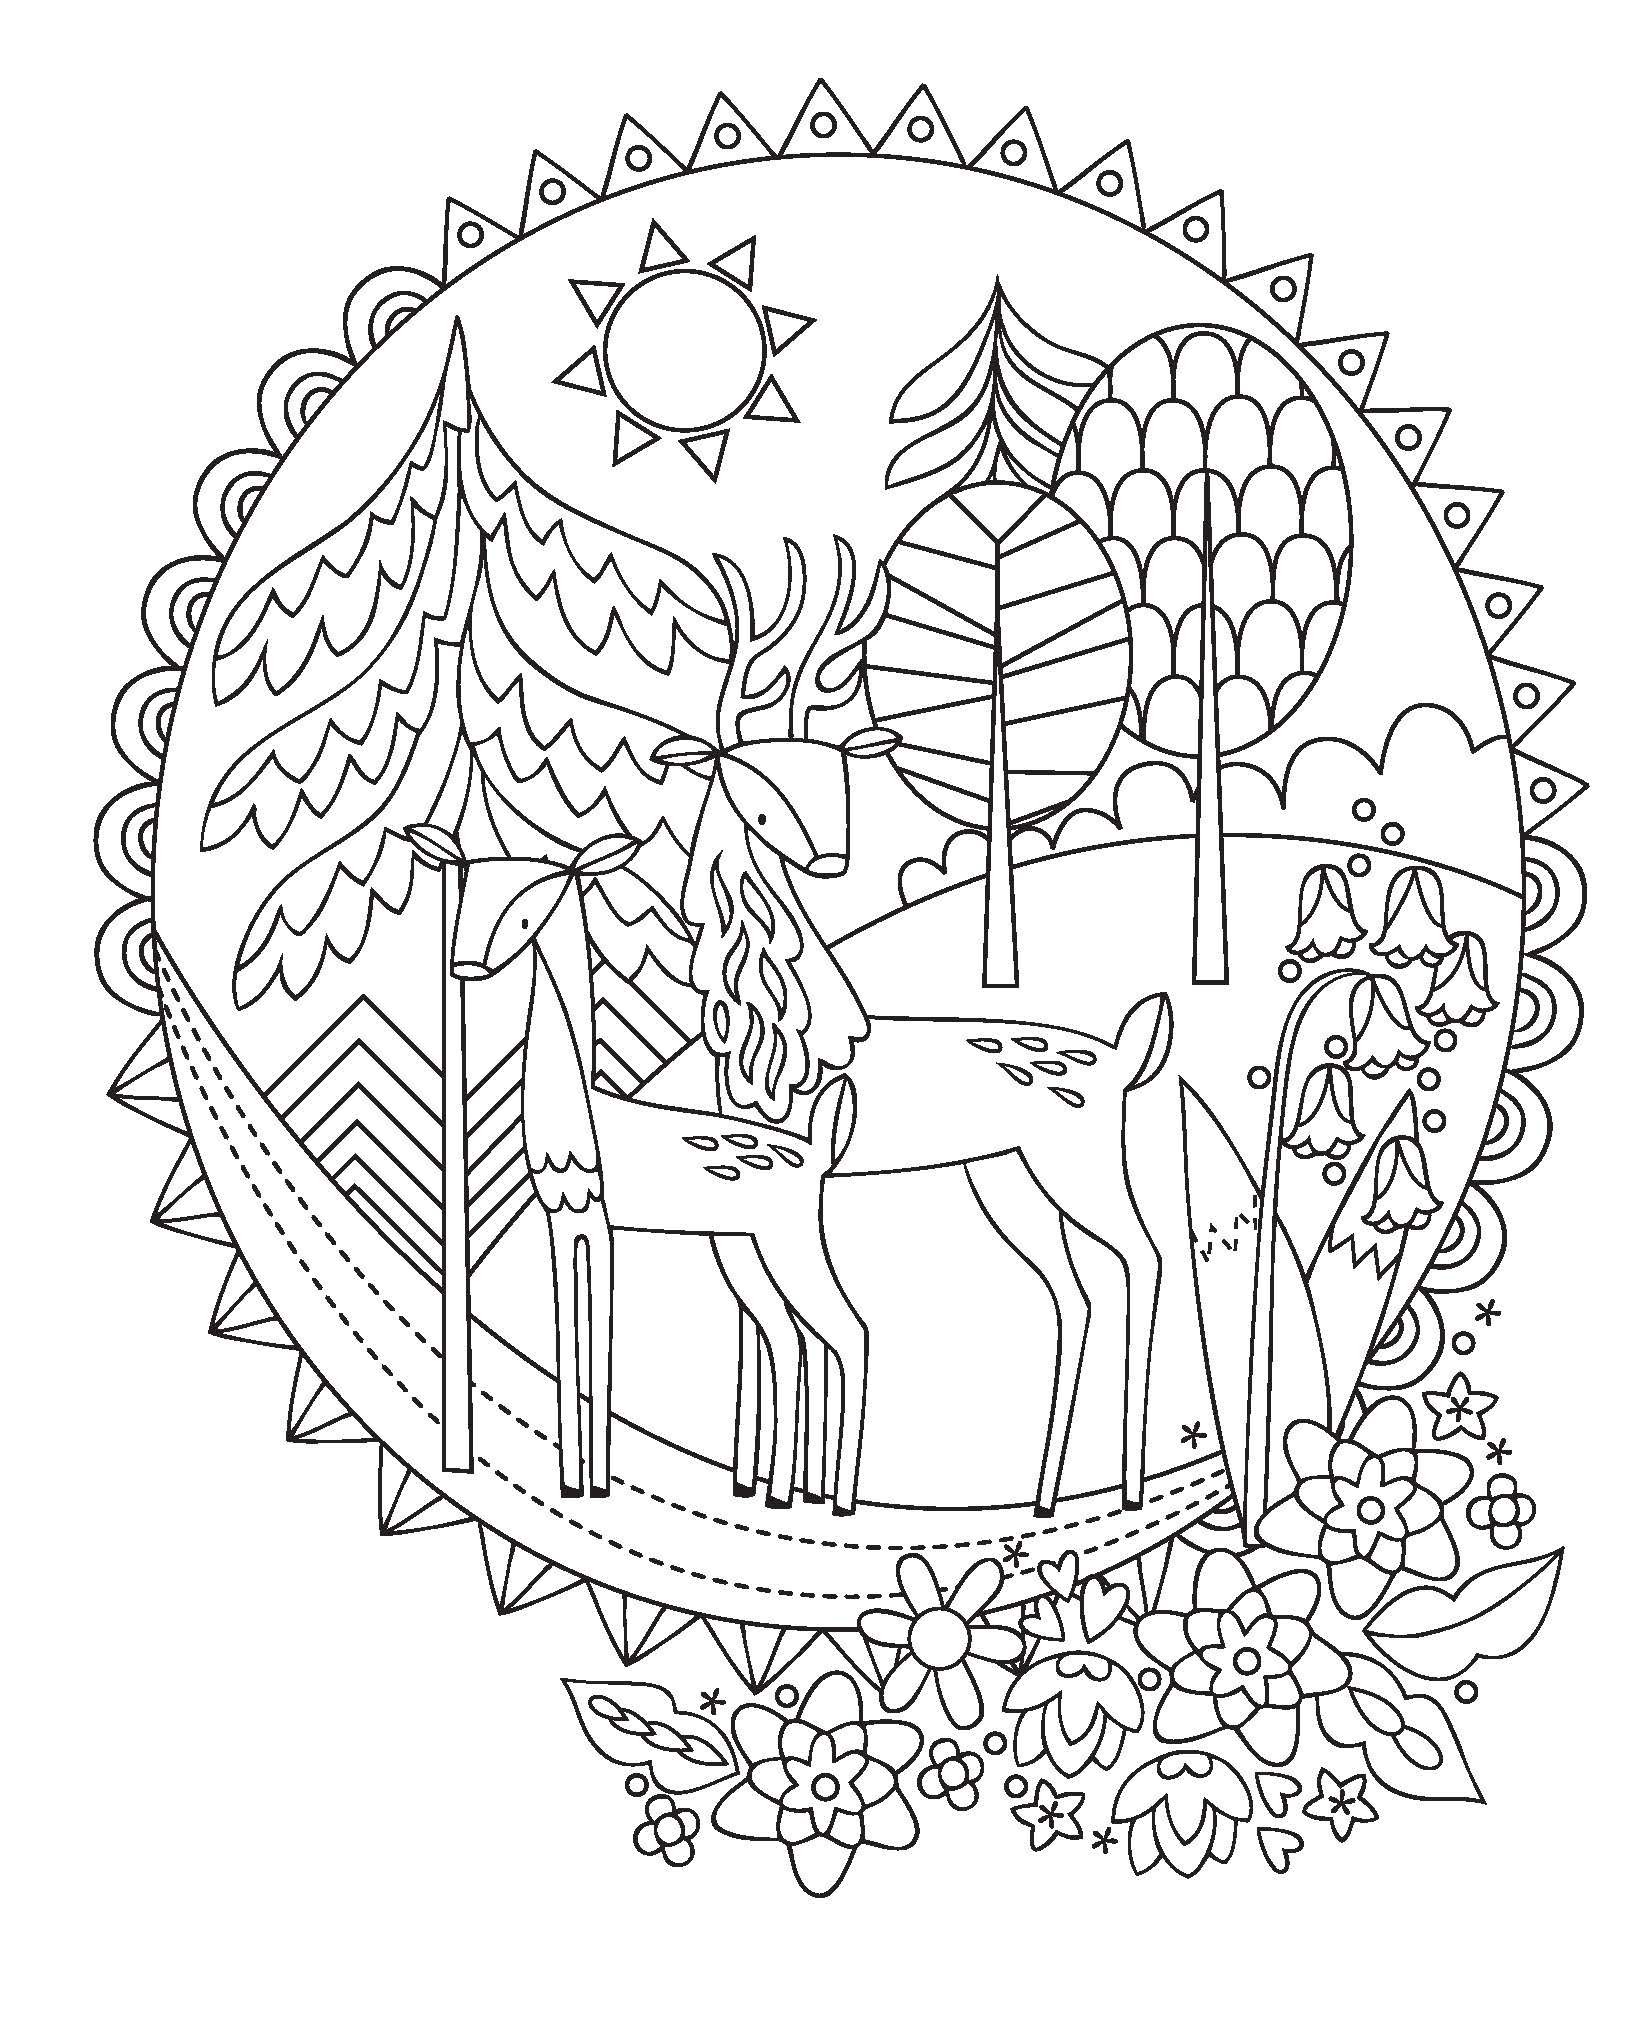 colors coloring pages - photo#11